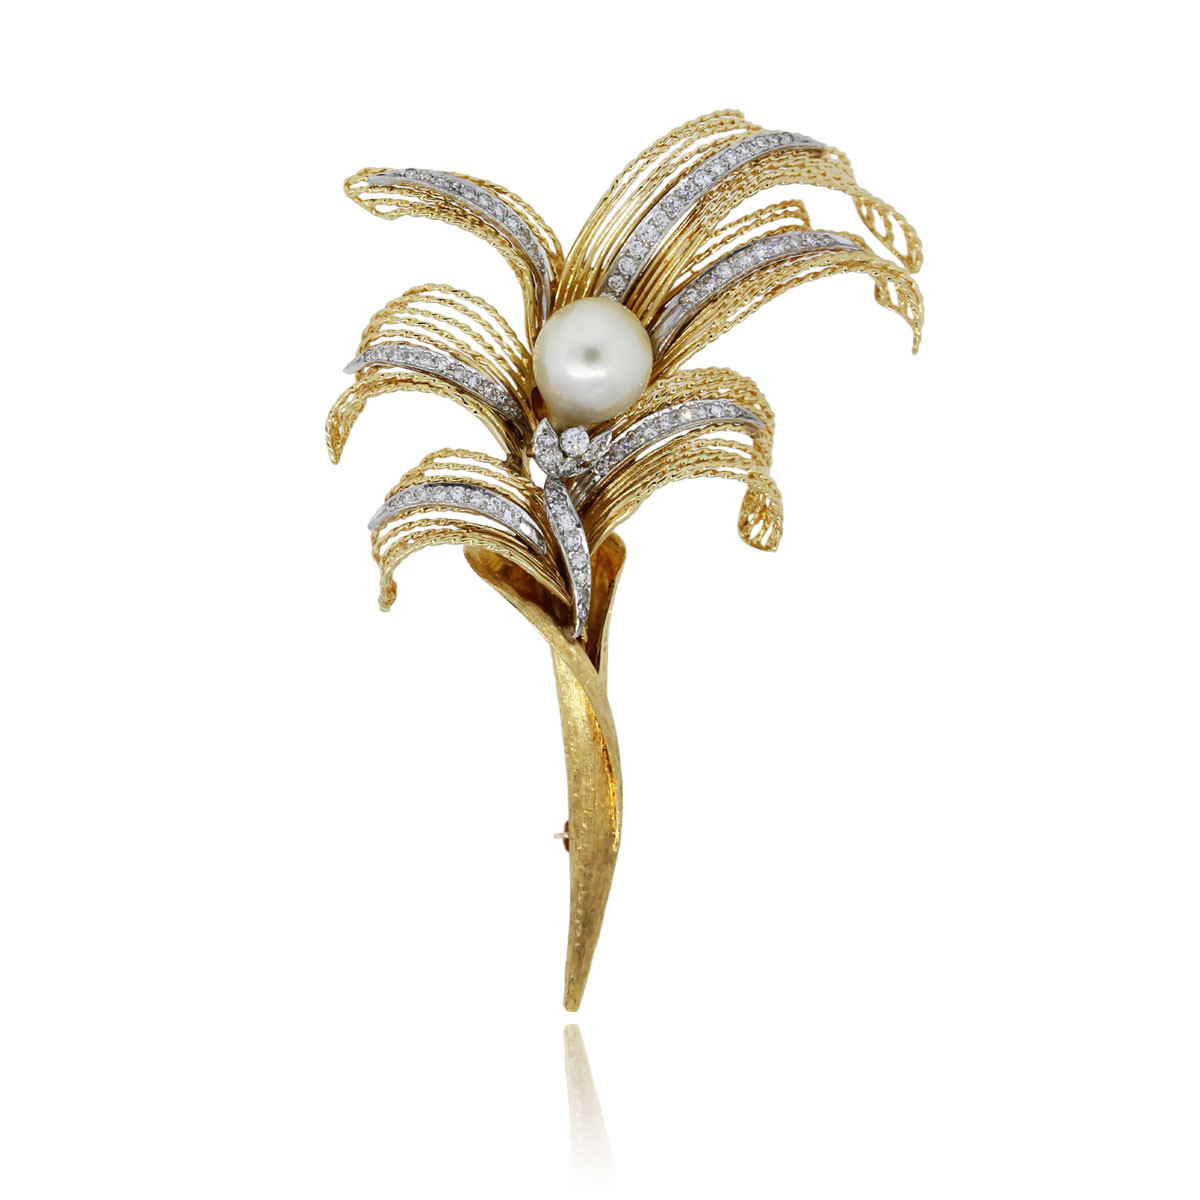 You are viewing this 18k Yellow Gold 1.2ctw Diamond 10.75mm Pearl Pin!